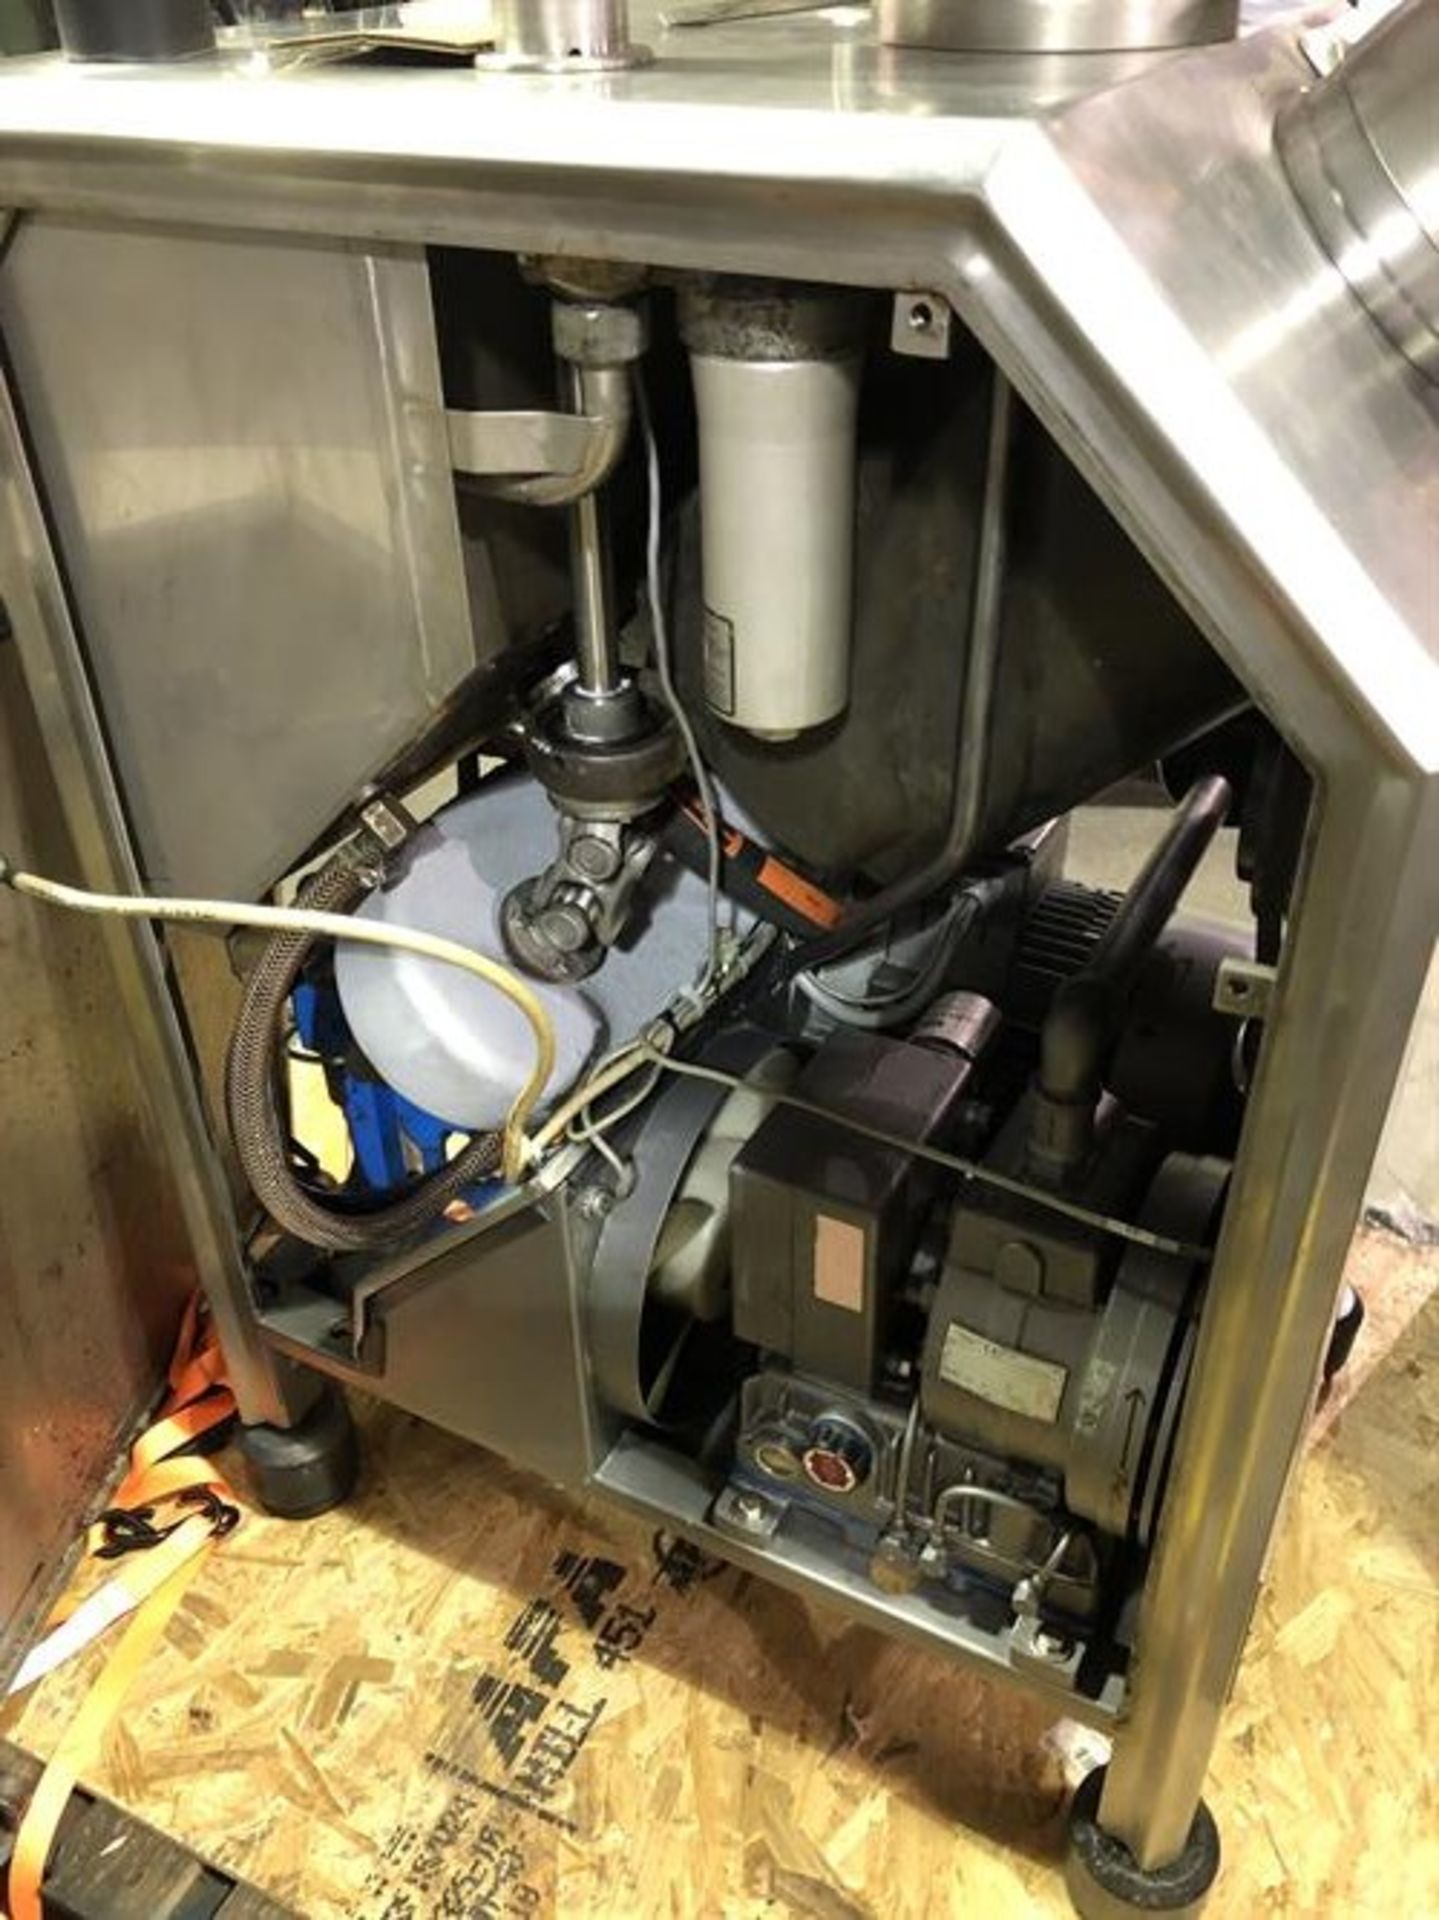 Vemag Robot 500 Stainless Steel Vacuum Stuffer - Machine has been completely reconditioned - PC - Image 28 of 31